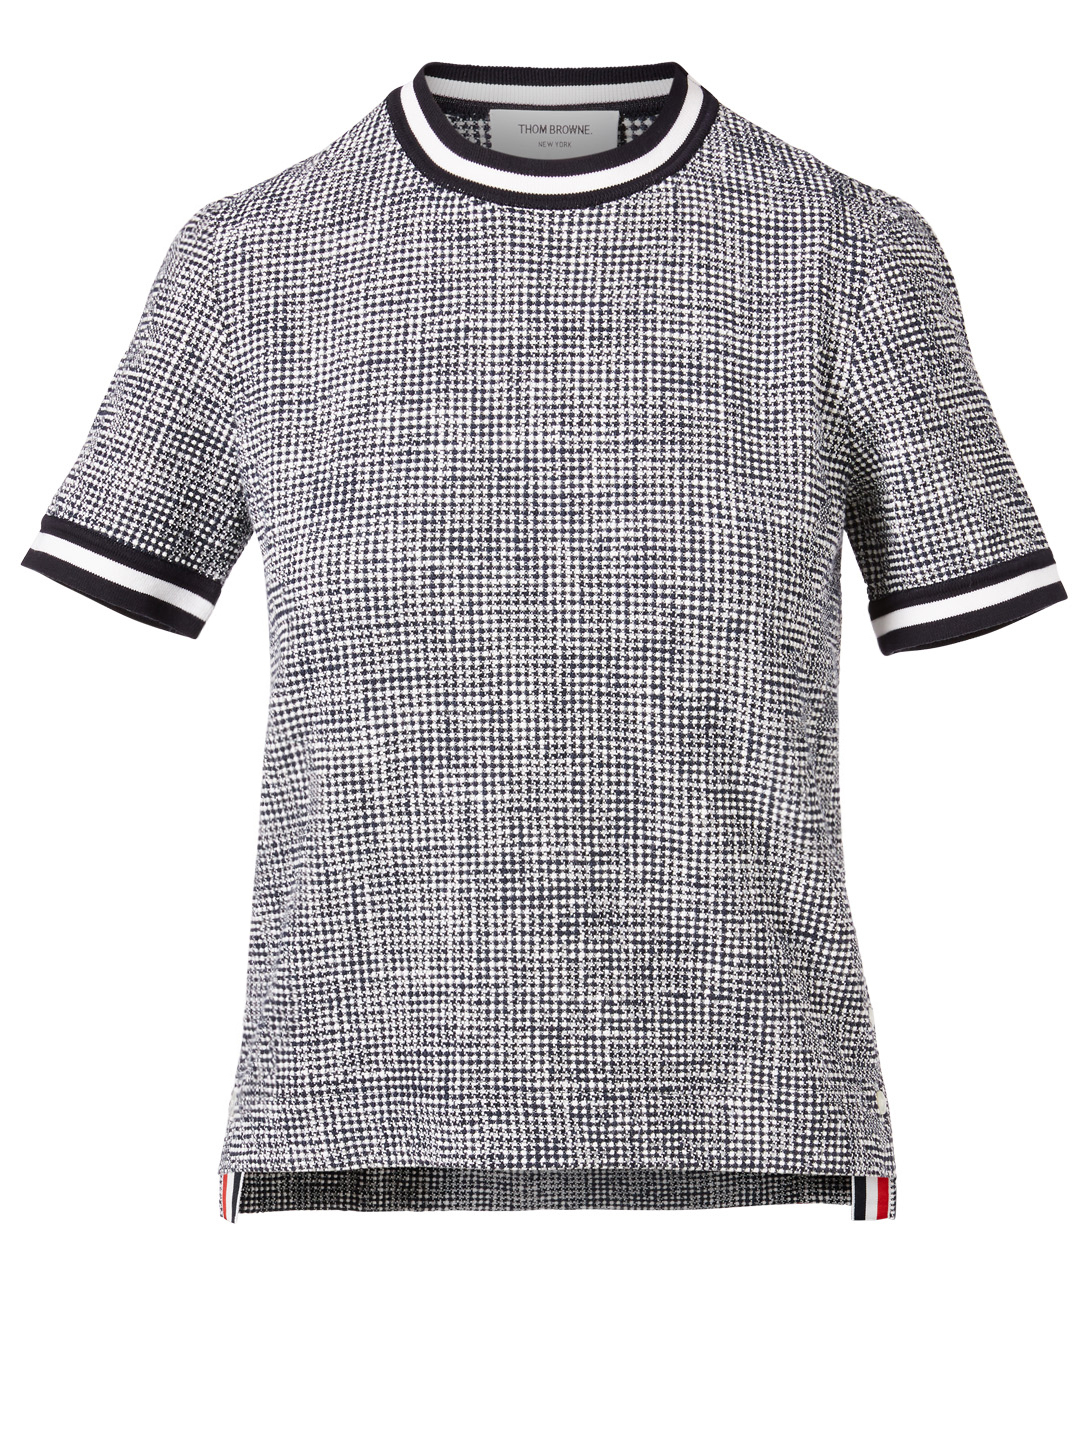 THOM BROWNE Tweed T-Shirt Women's Blue